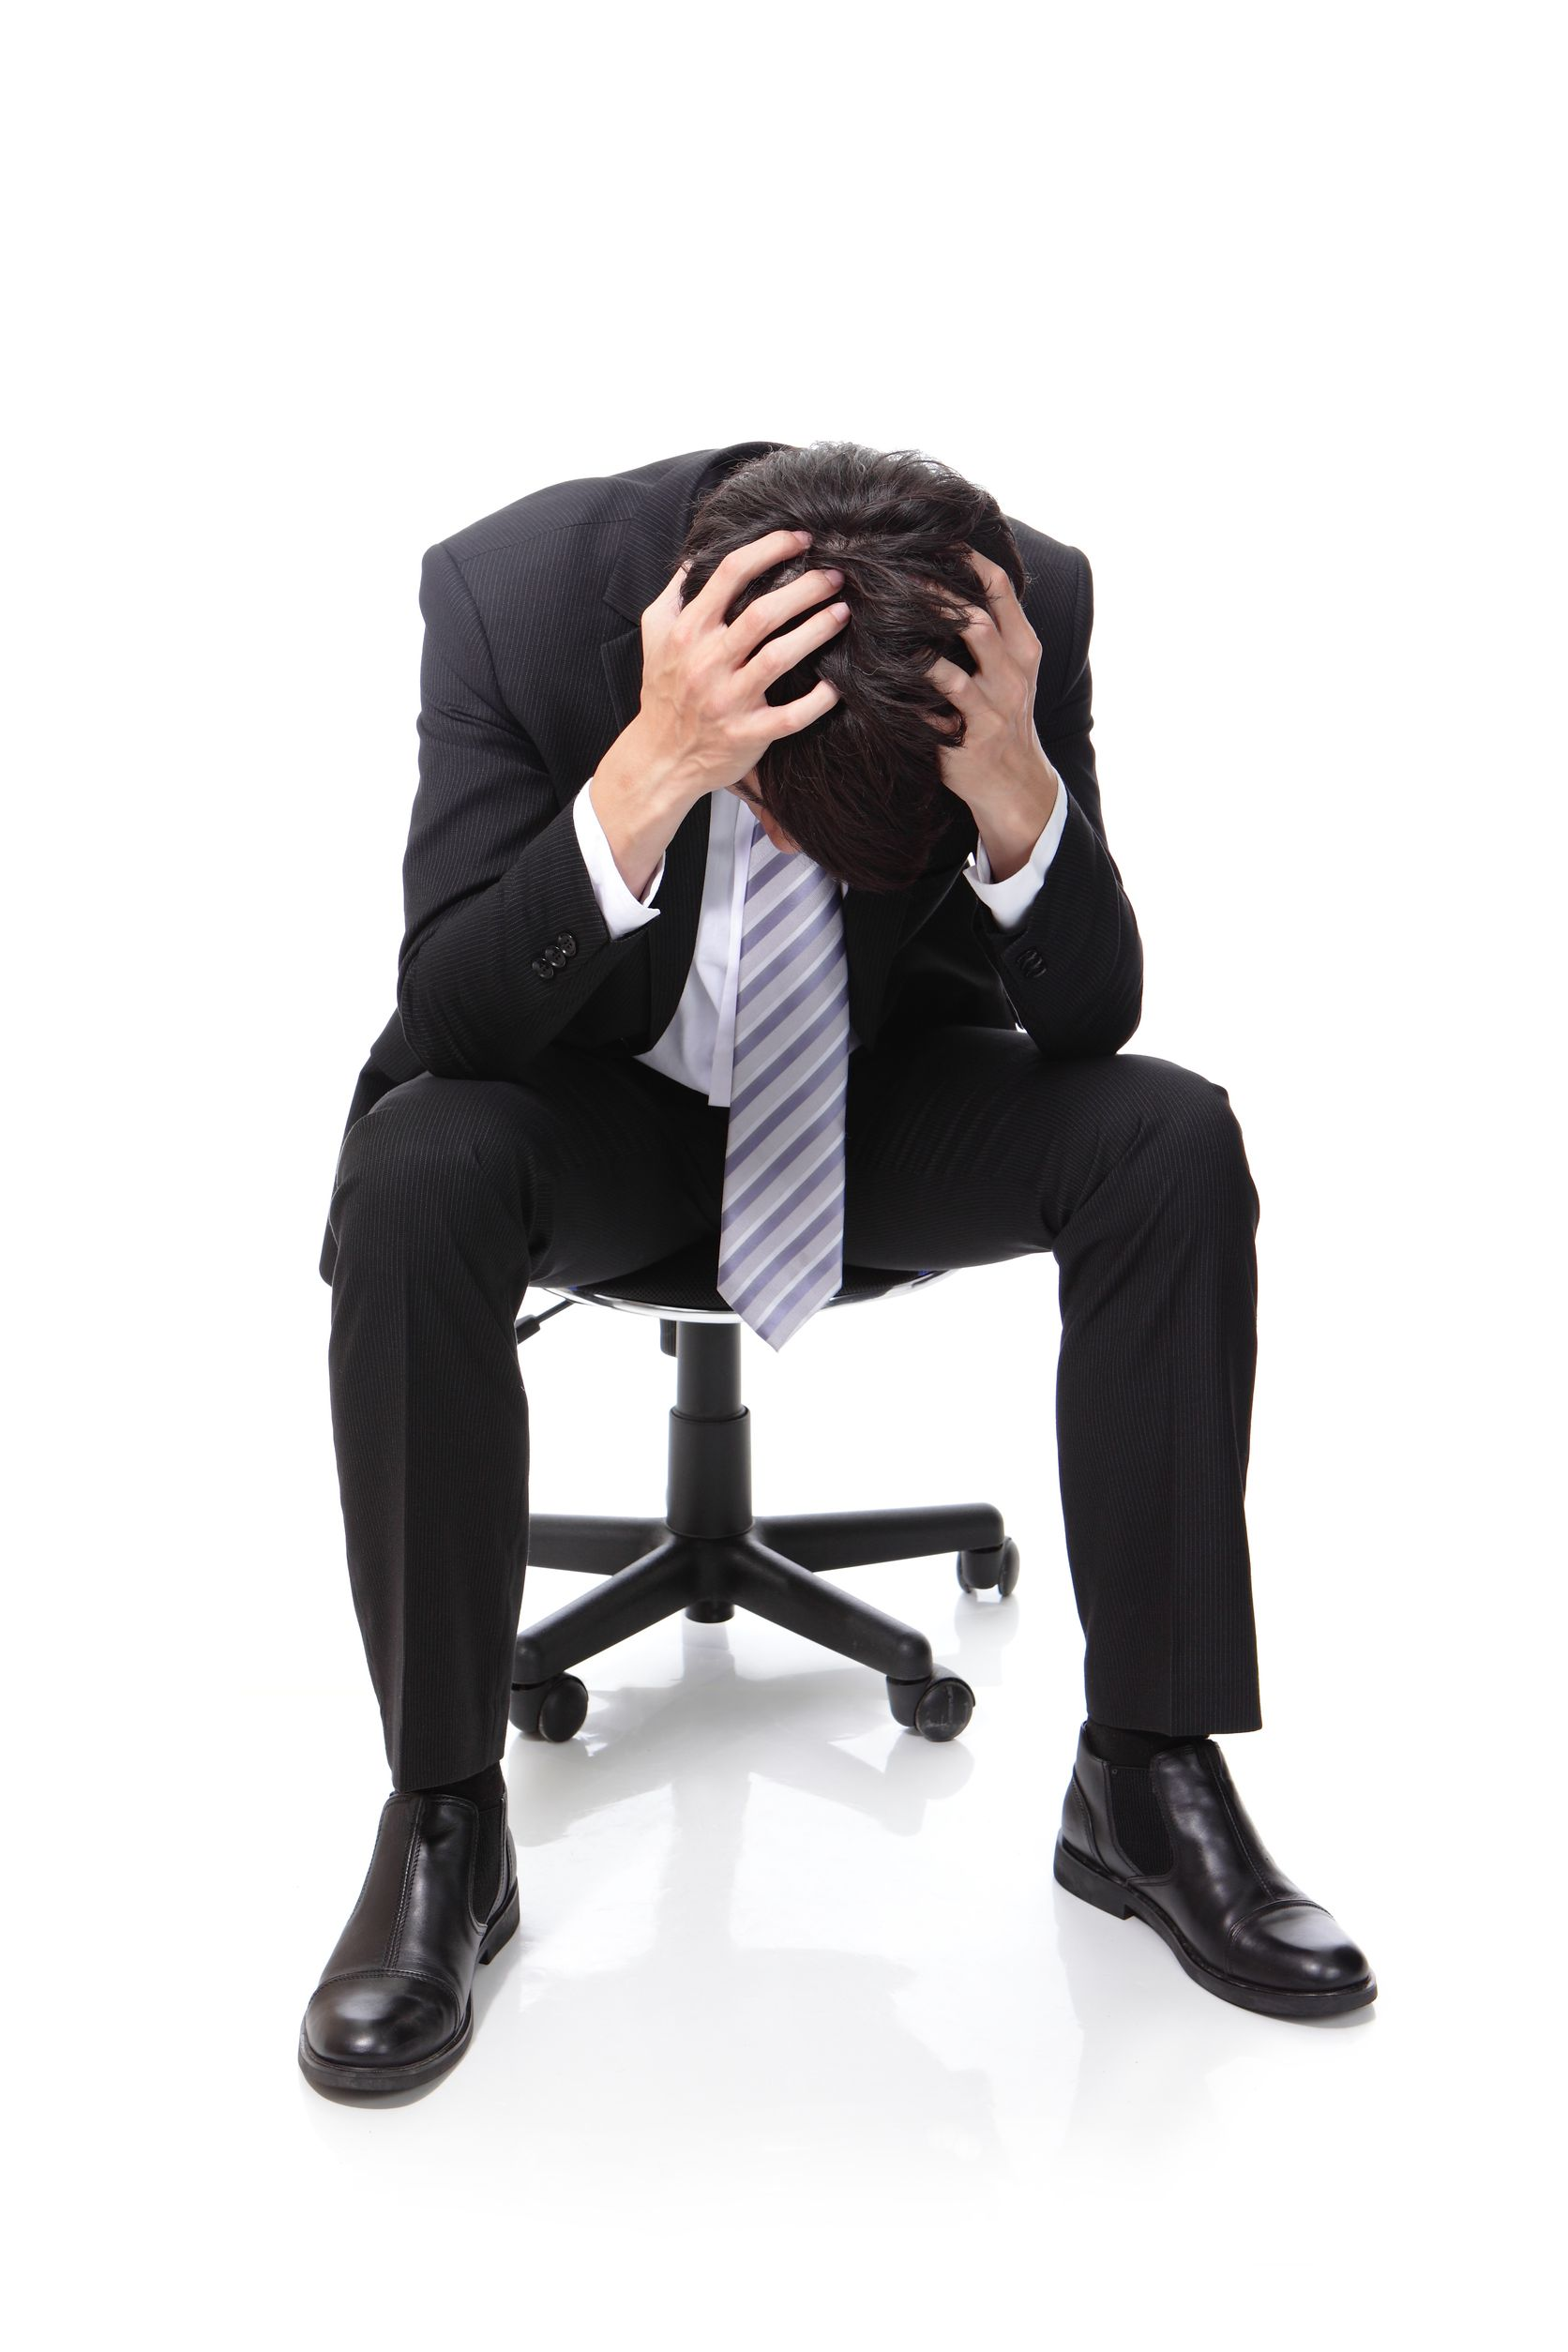 Stress of Long Hours, Work-Family Imbalance Kills Workers ...